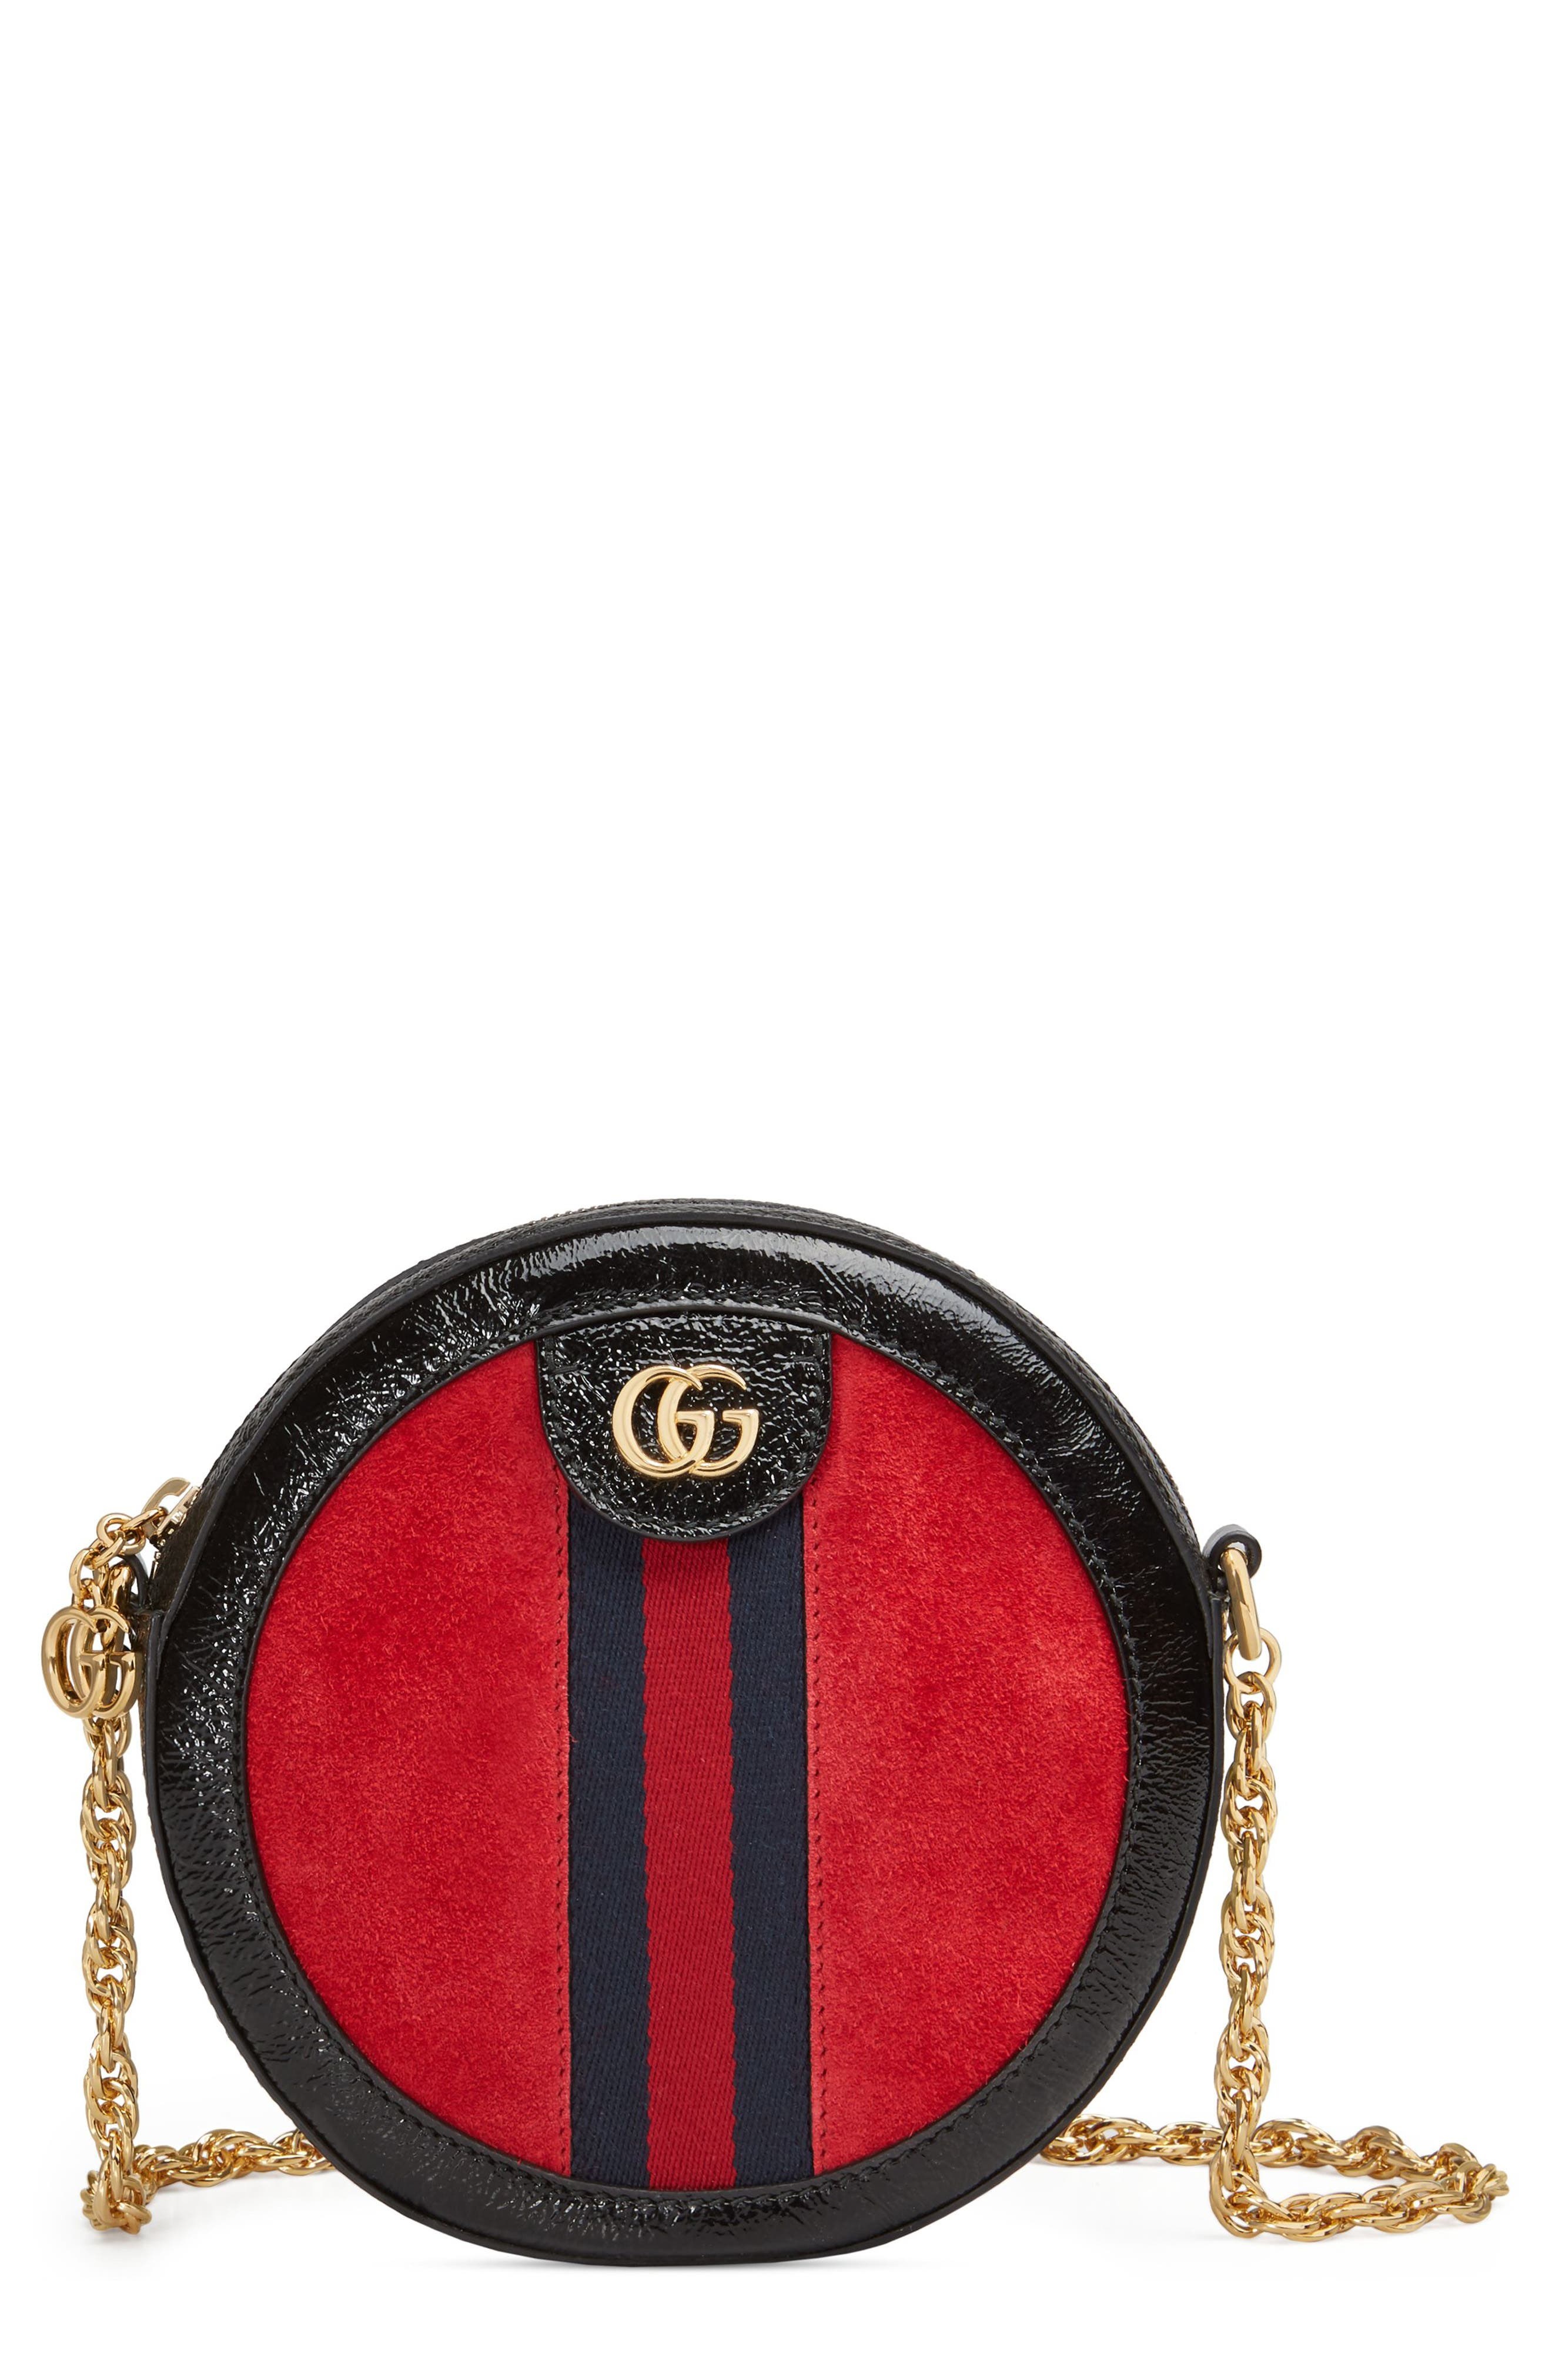 GUCCI,                             Mini Ophidia Round Shoulder Bag,                             Main thumbnail 1, color,                             HIBISCUS RED/ NERO/ BLUE